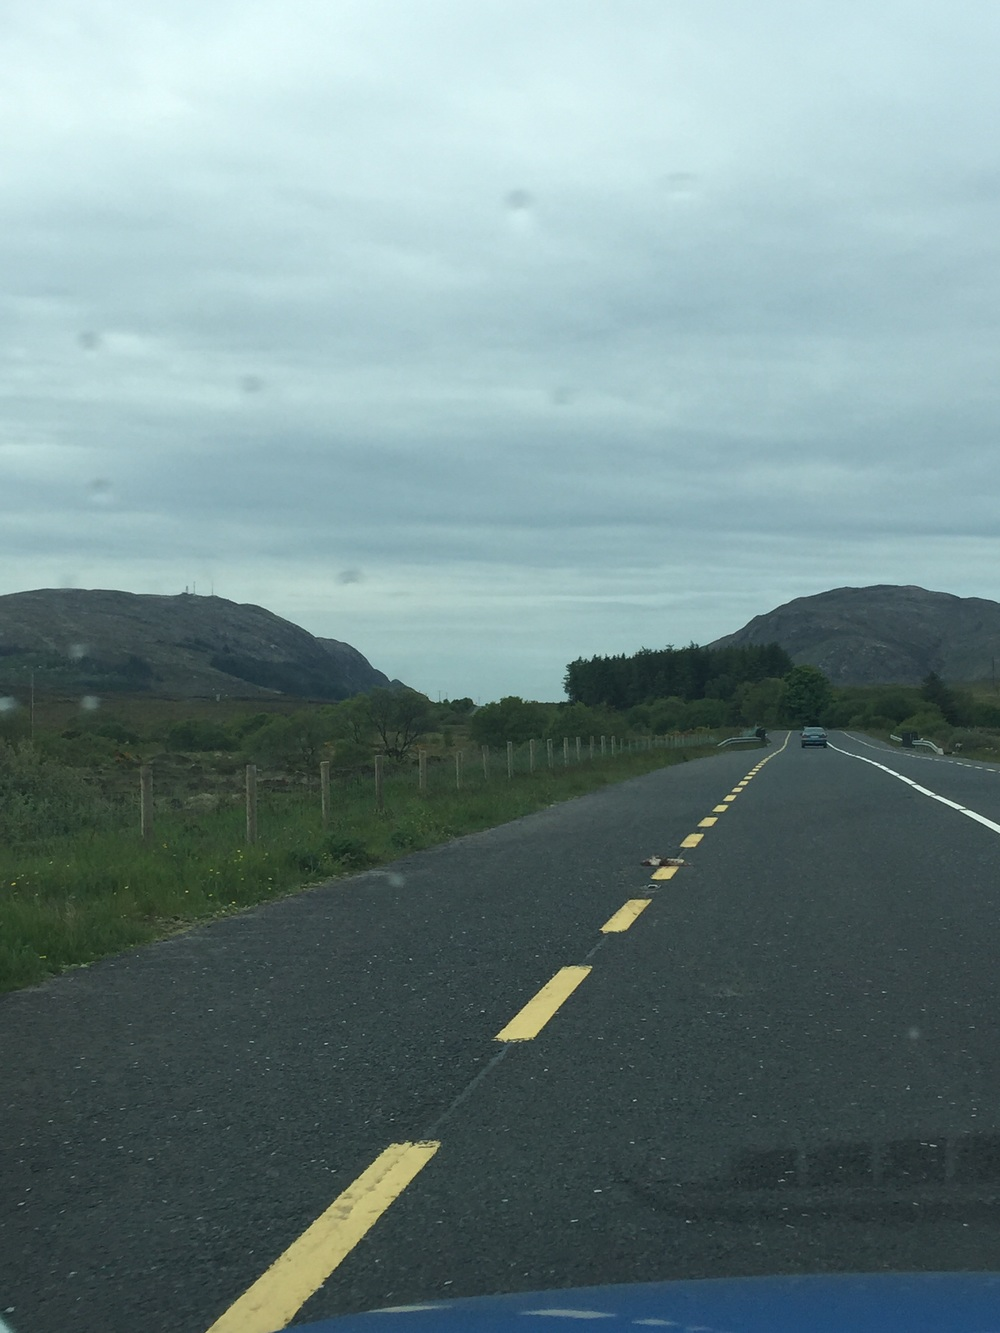 On the road...best way to travel Ireland, rent a car and muster the courage up to drive. We have seen so much beauty and mountains, like nothing ever seen!